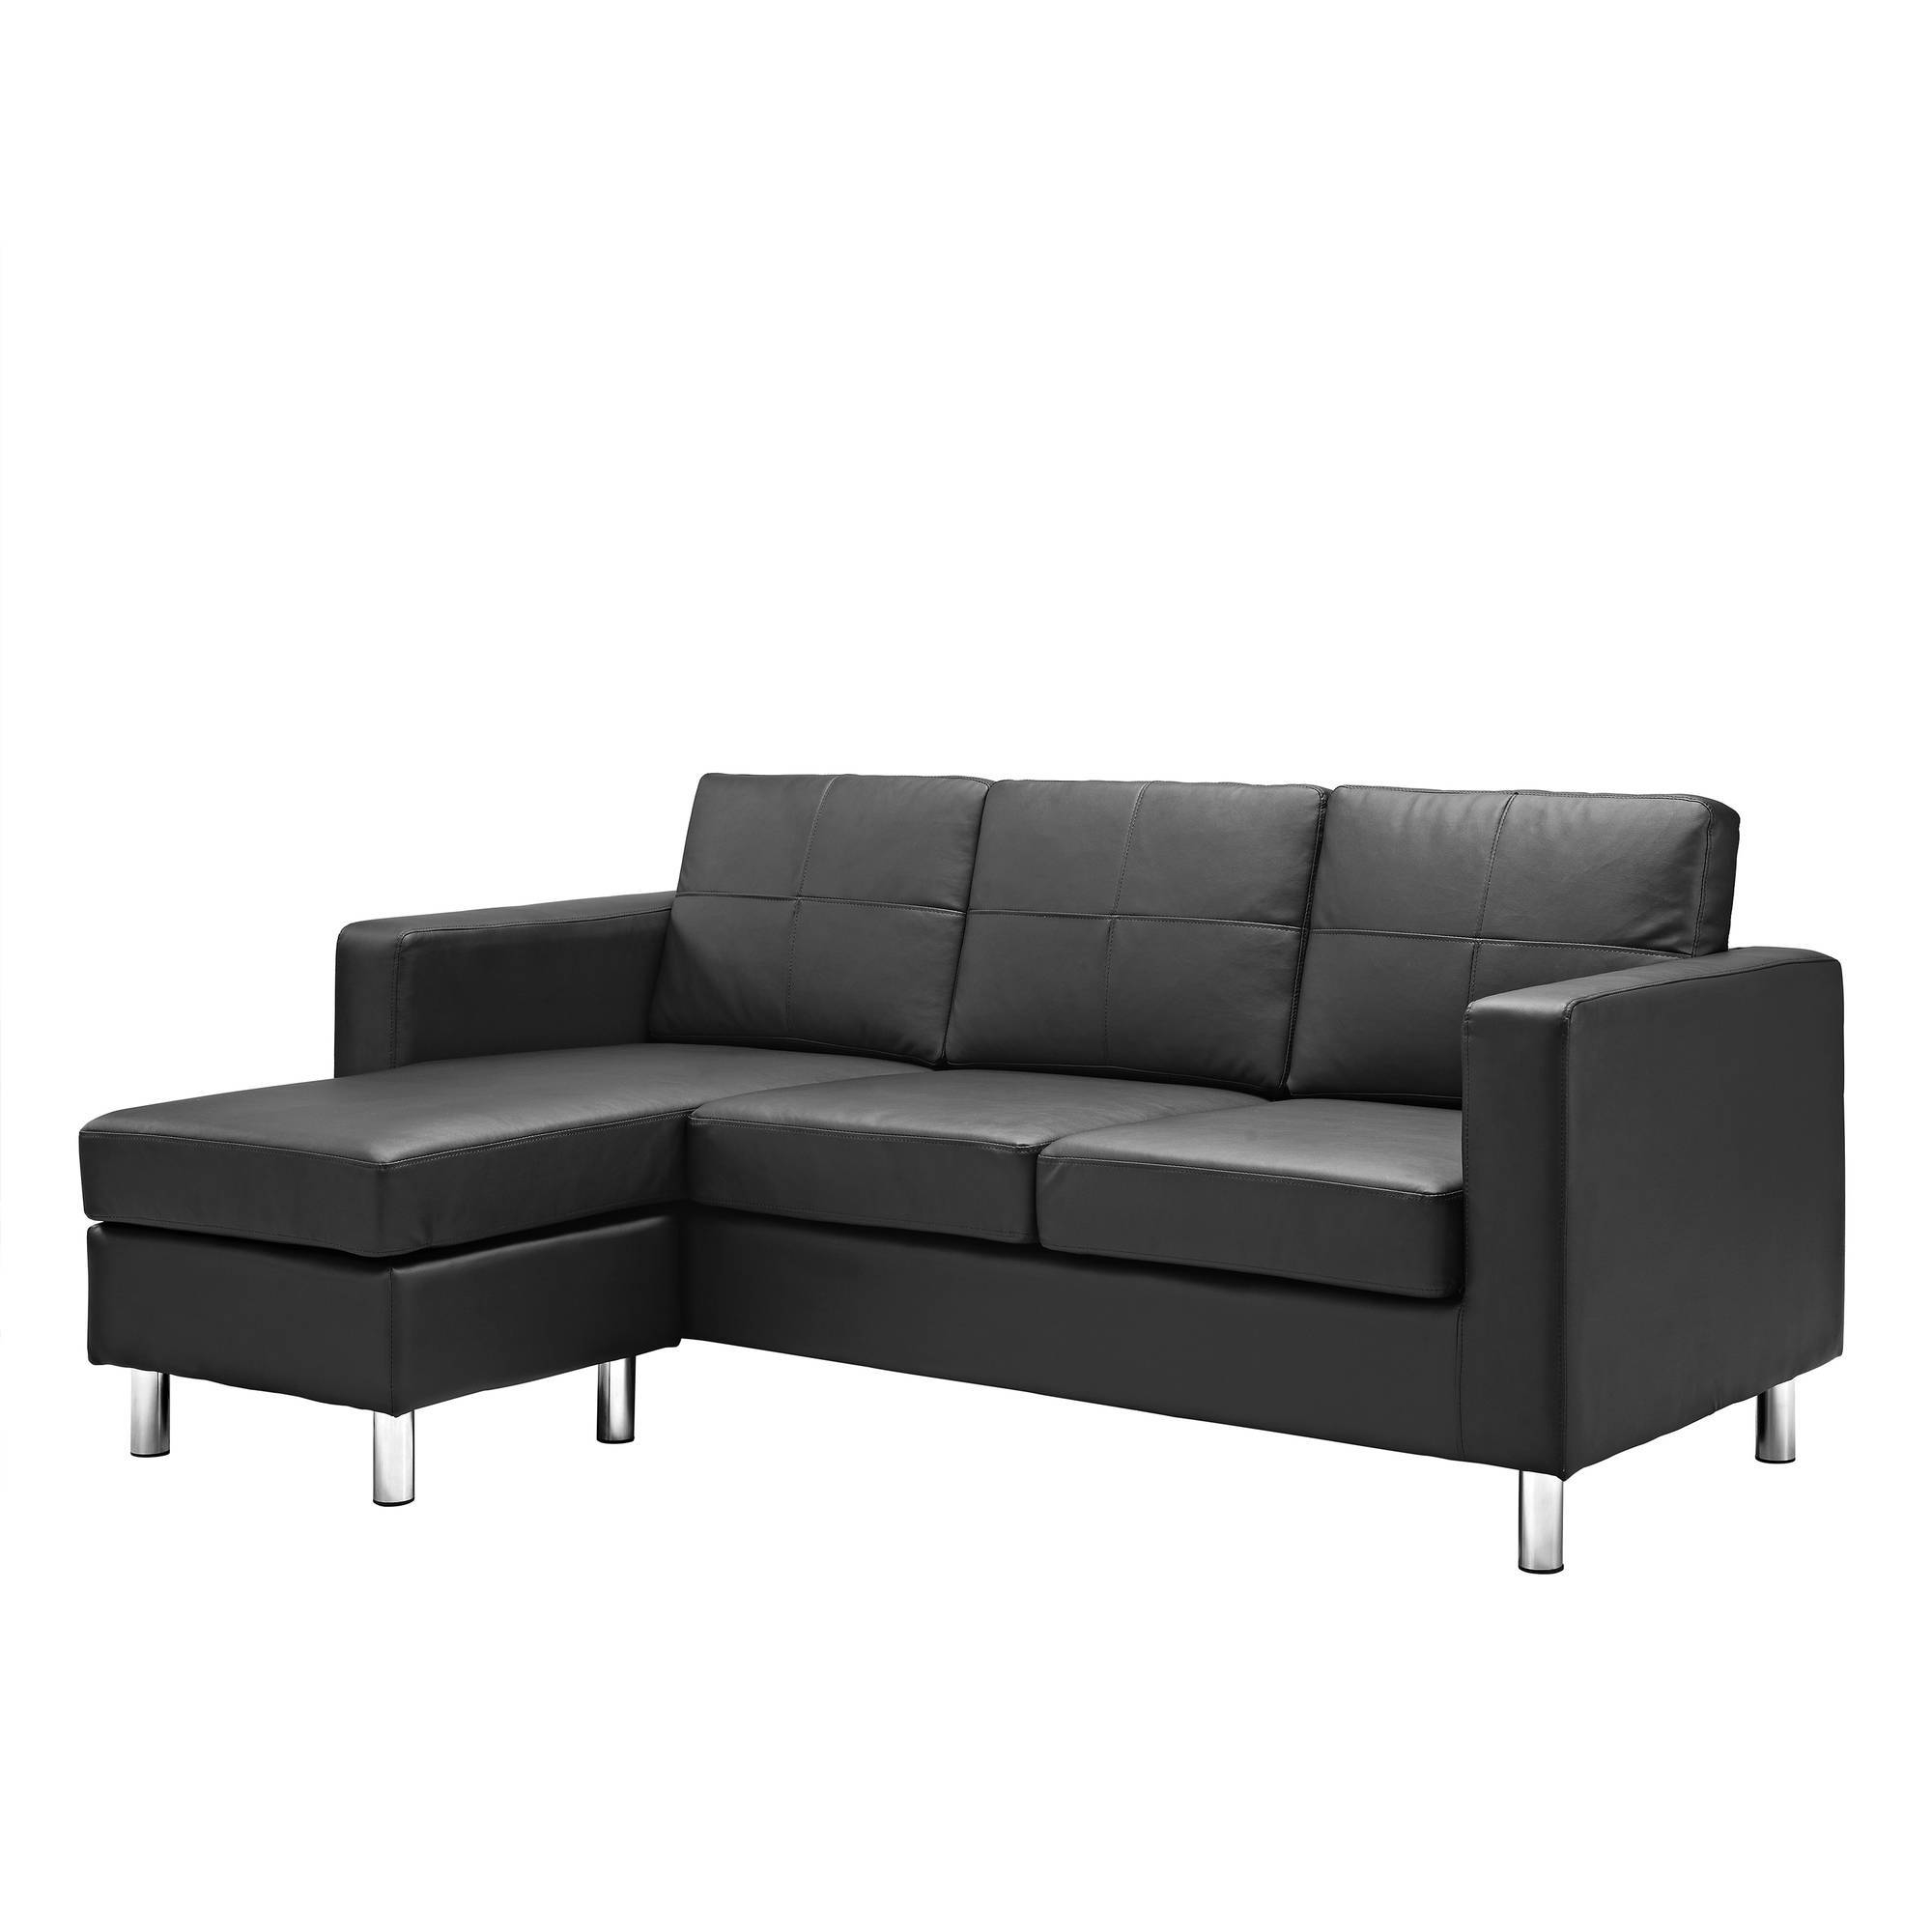 Furniture & Sofa: Perfect Small Spaces Configurable Sectional Sofa regarding Short Sectional Sofas (Image 6 of 15)